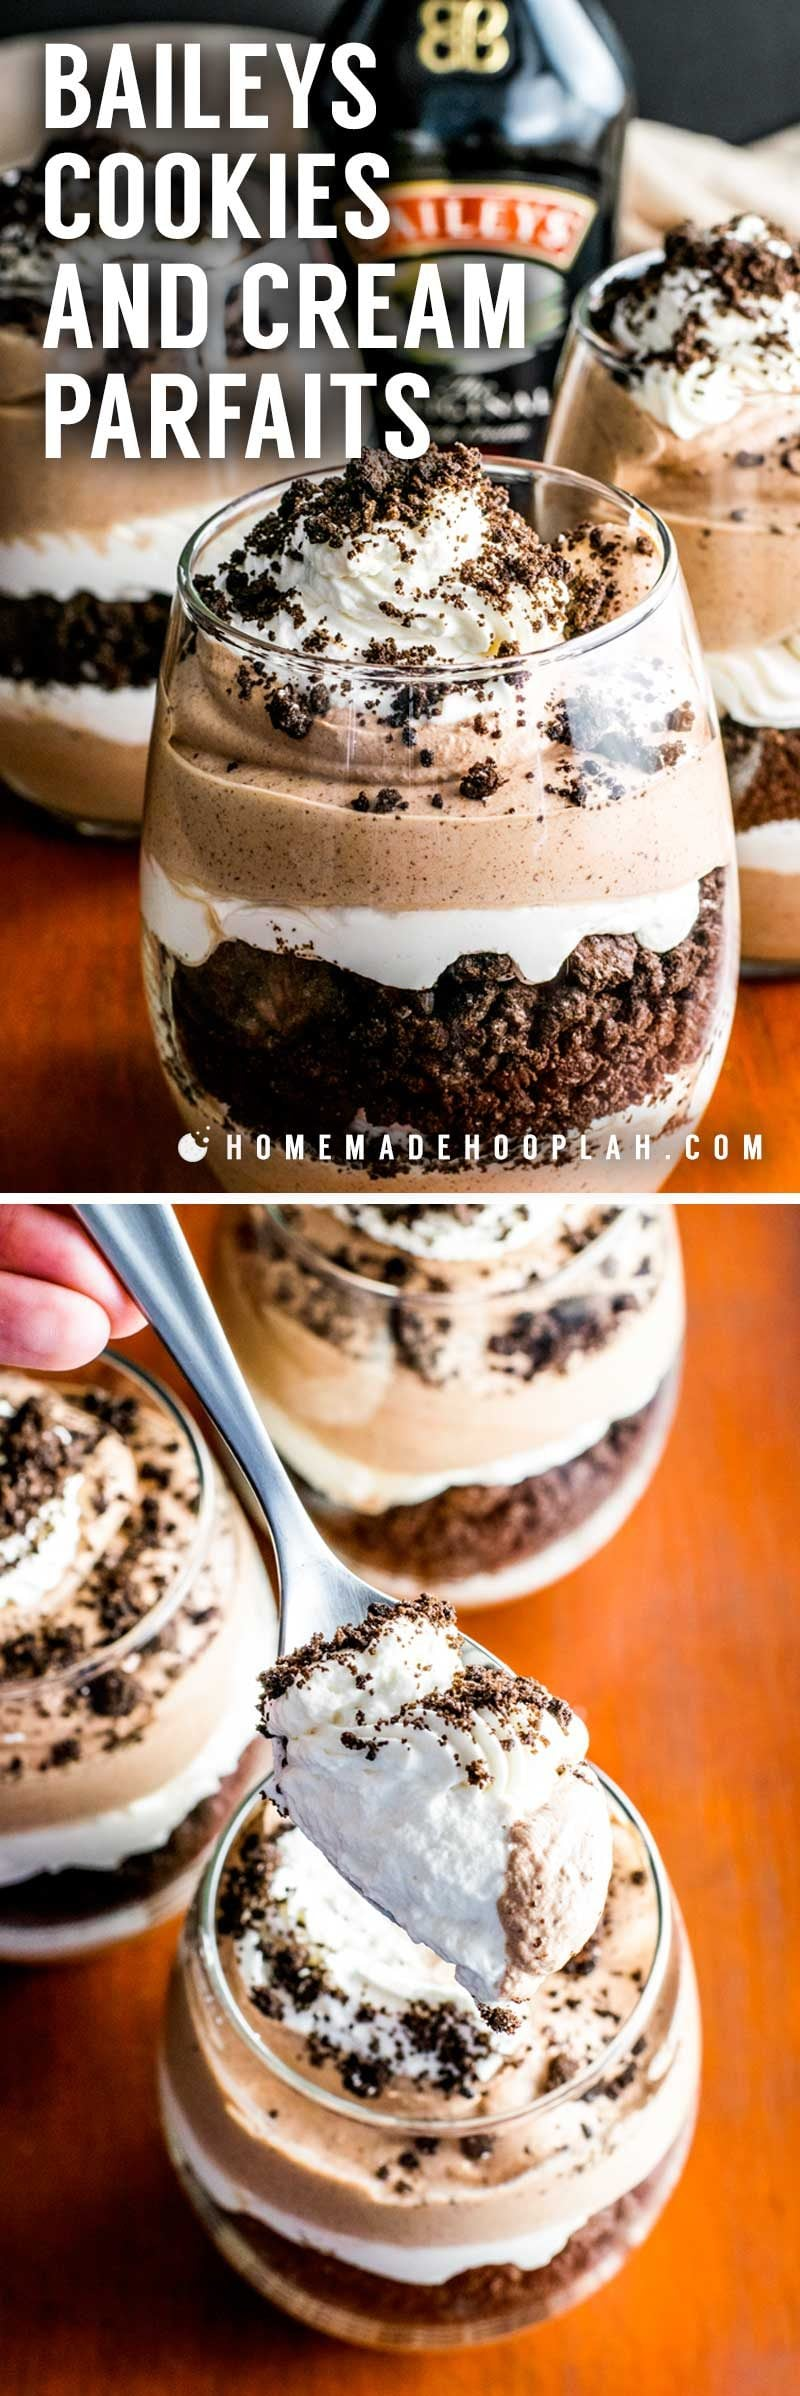 Cookie Nachtisch Baileys Cookies And Cream Parfaits Homemade Hooplah